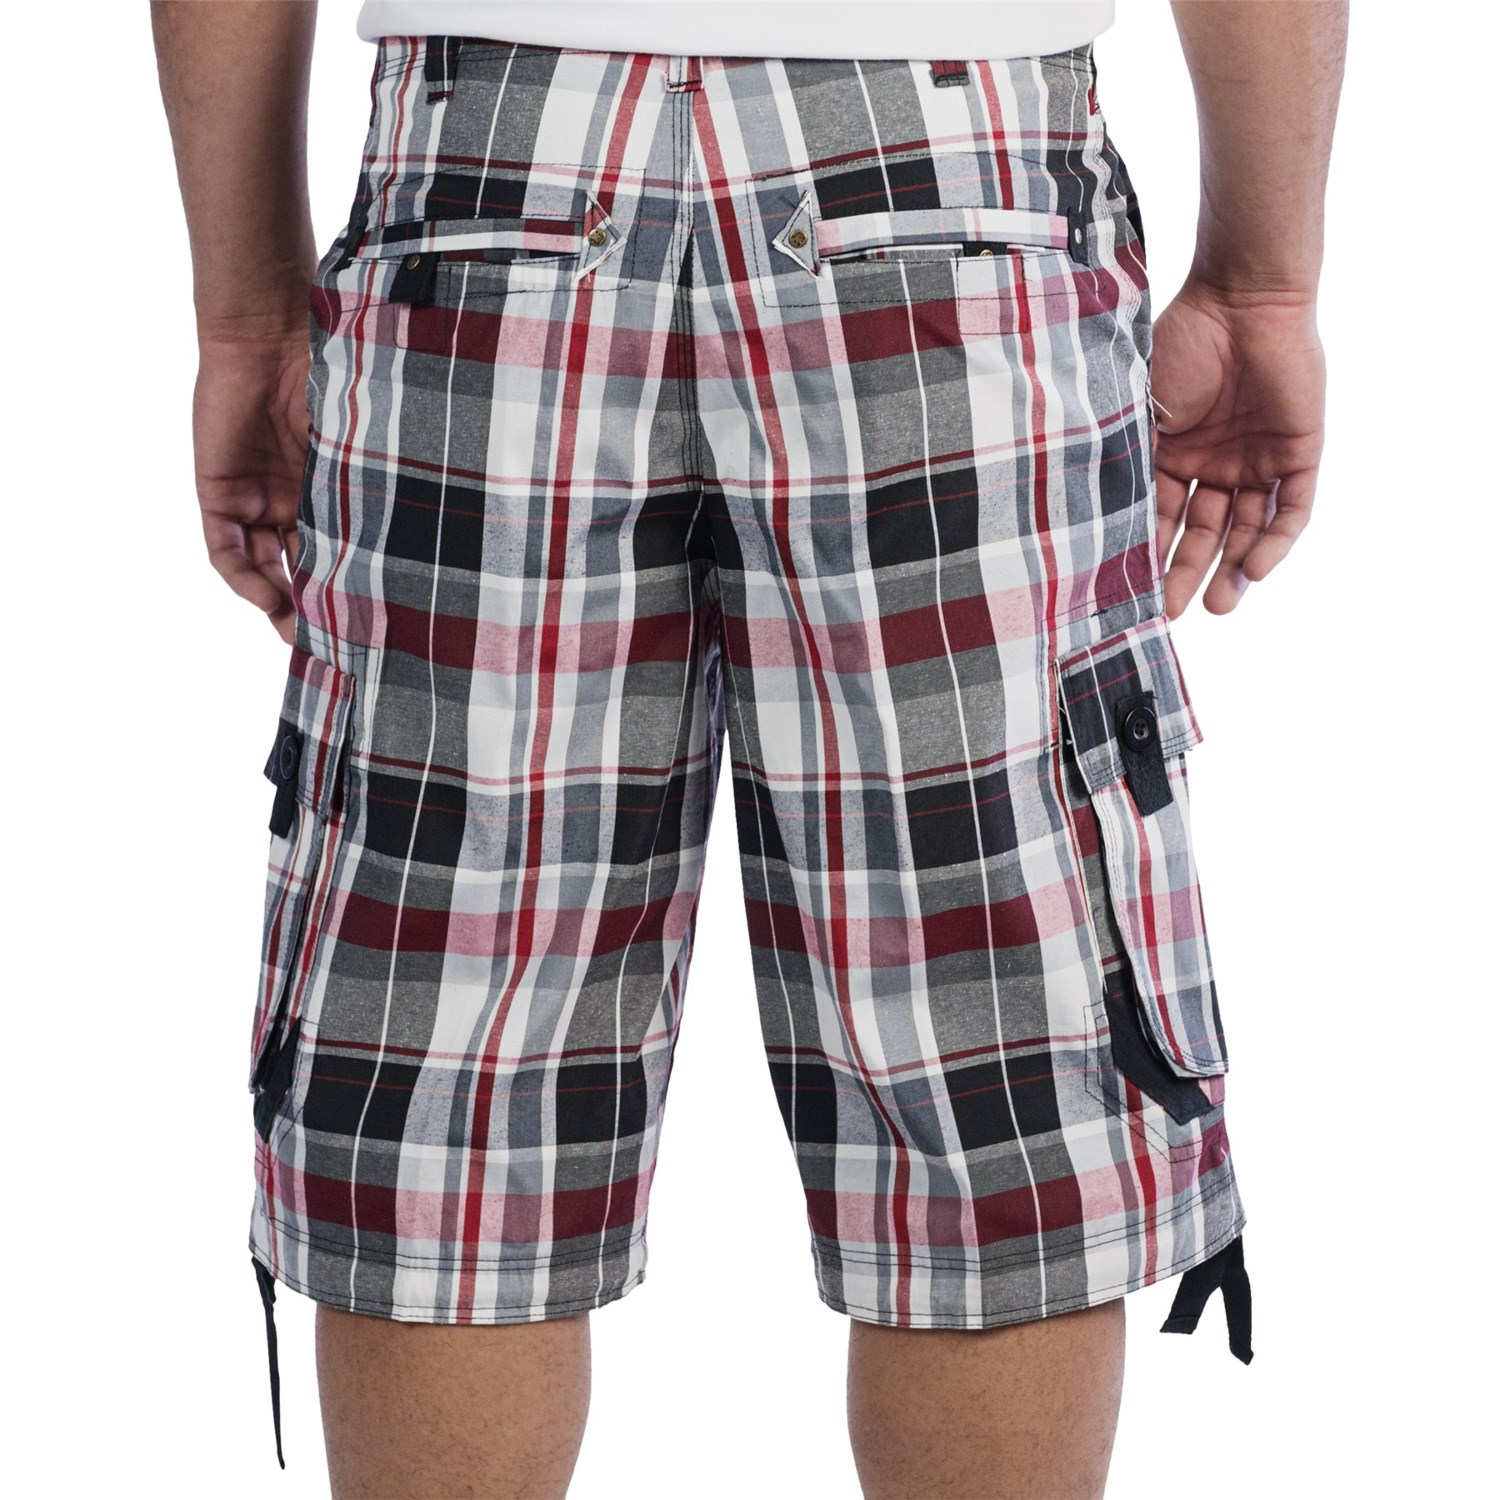 Plaid Mens Shorts - The Else